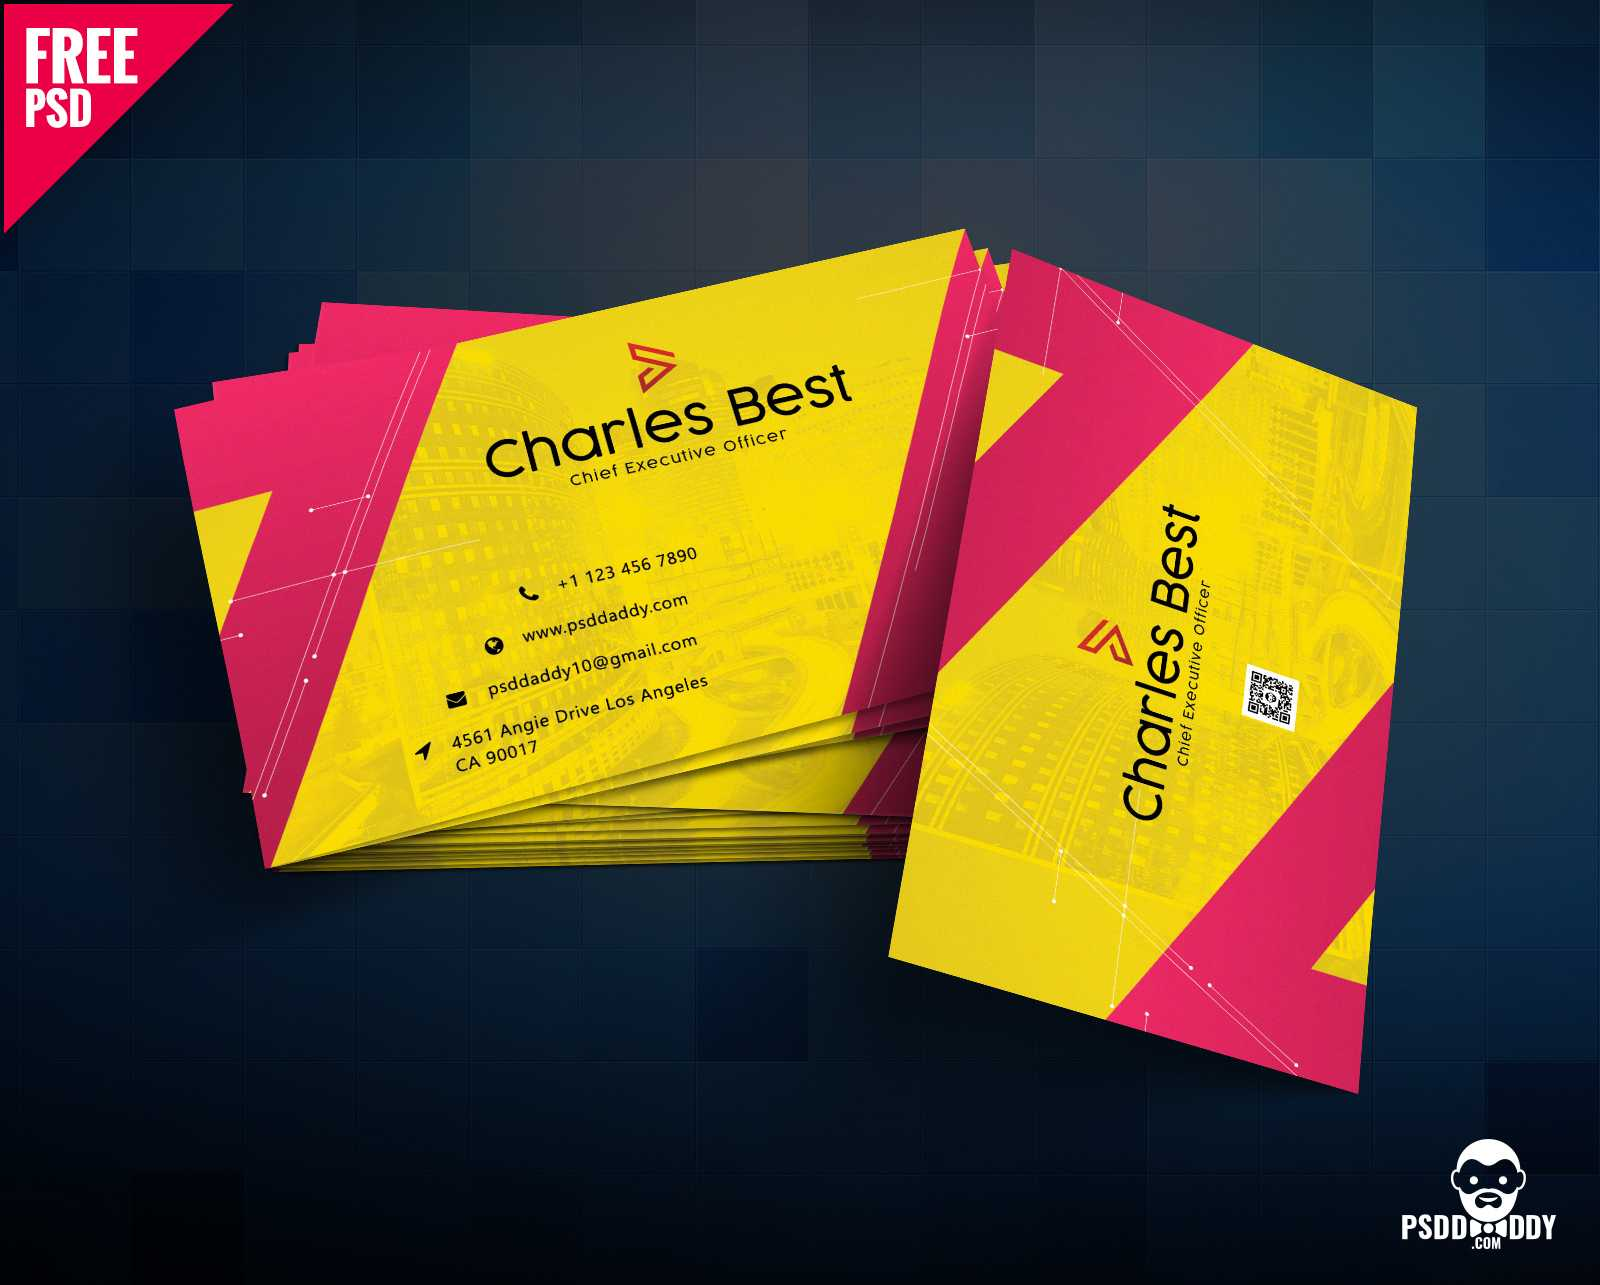 Download] Creative Business Card Free Psd   Psddaddy With Regard To Business Card Size Template Photoshop